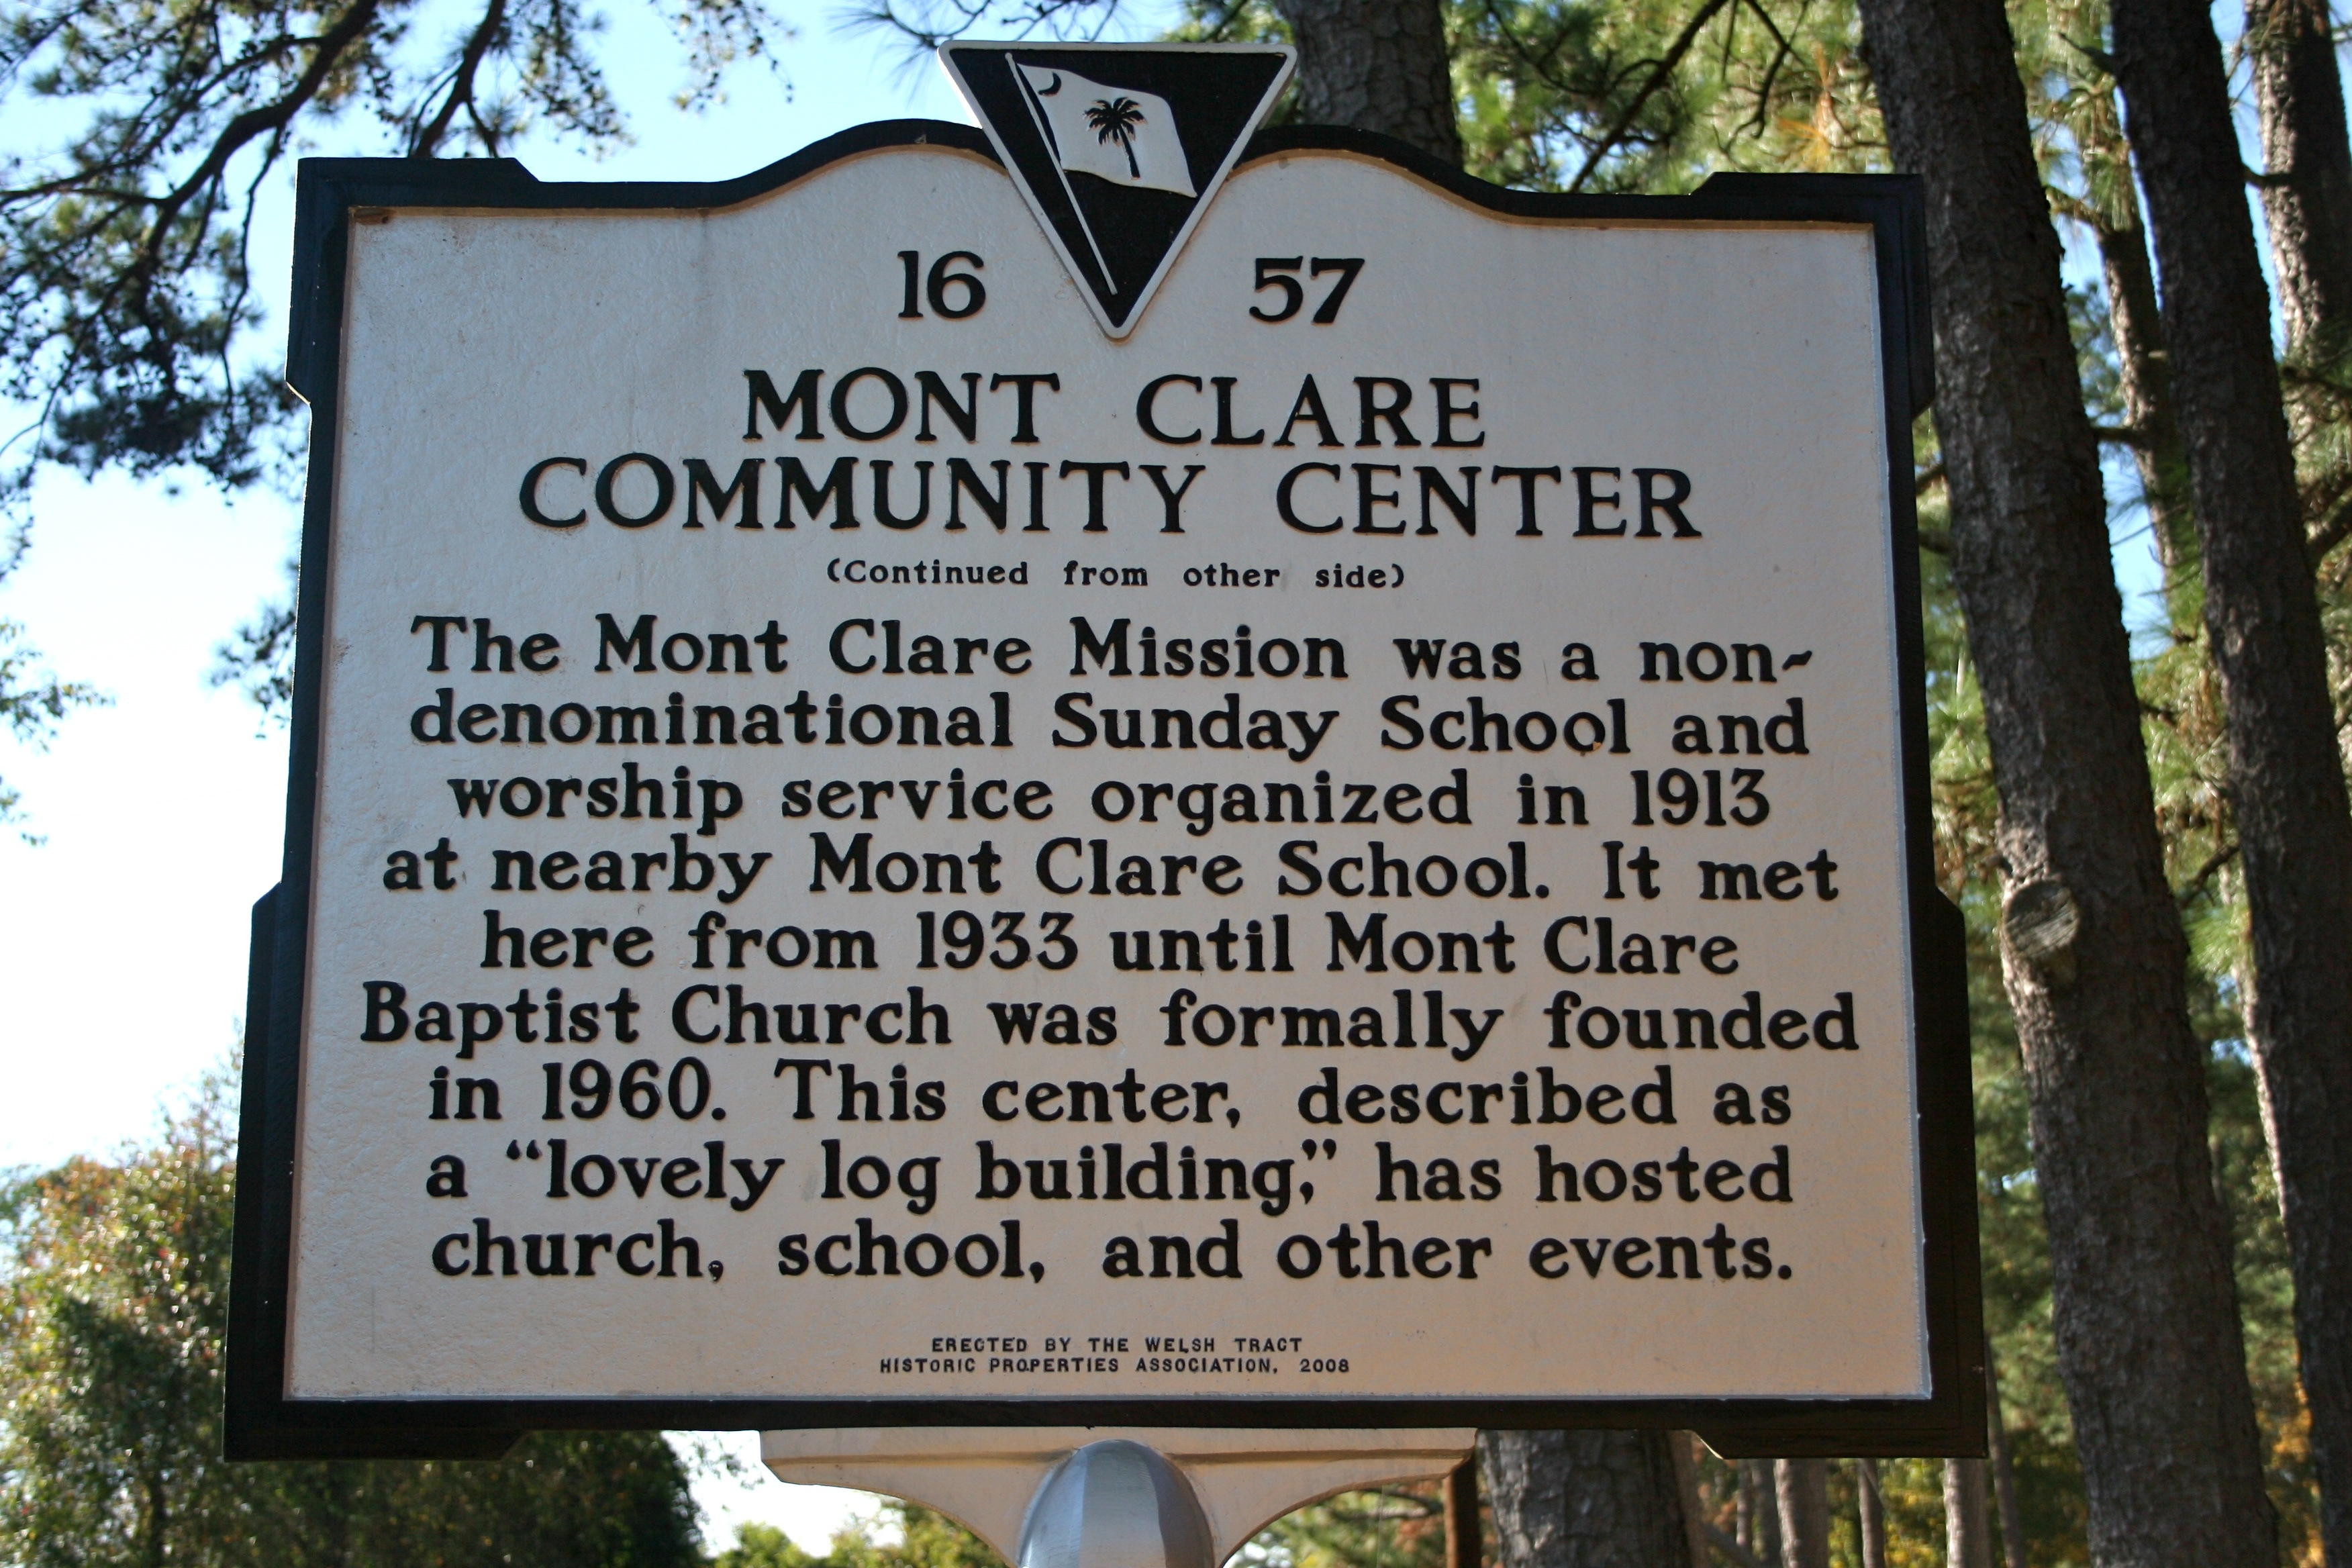 Mont Clare Community Center Marker (Side B)